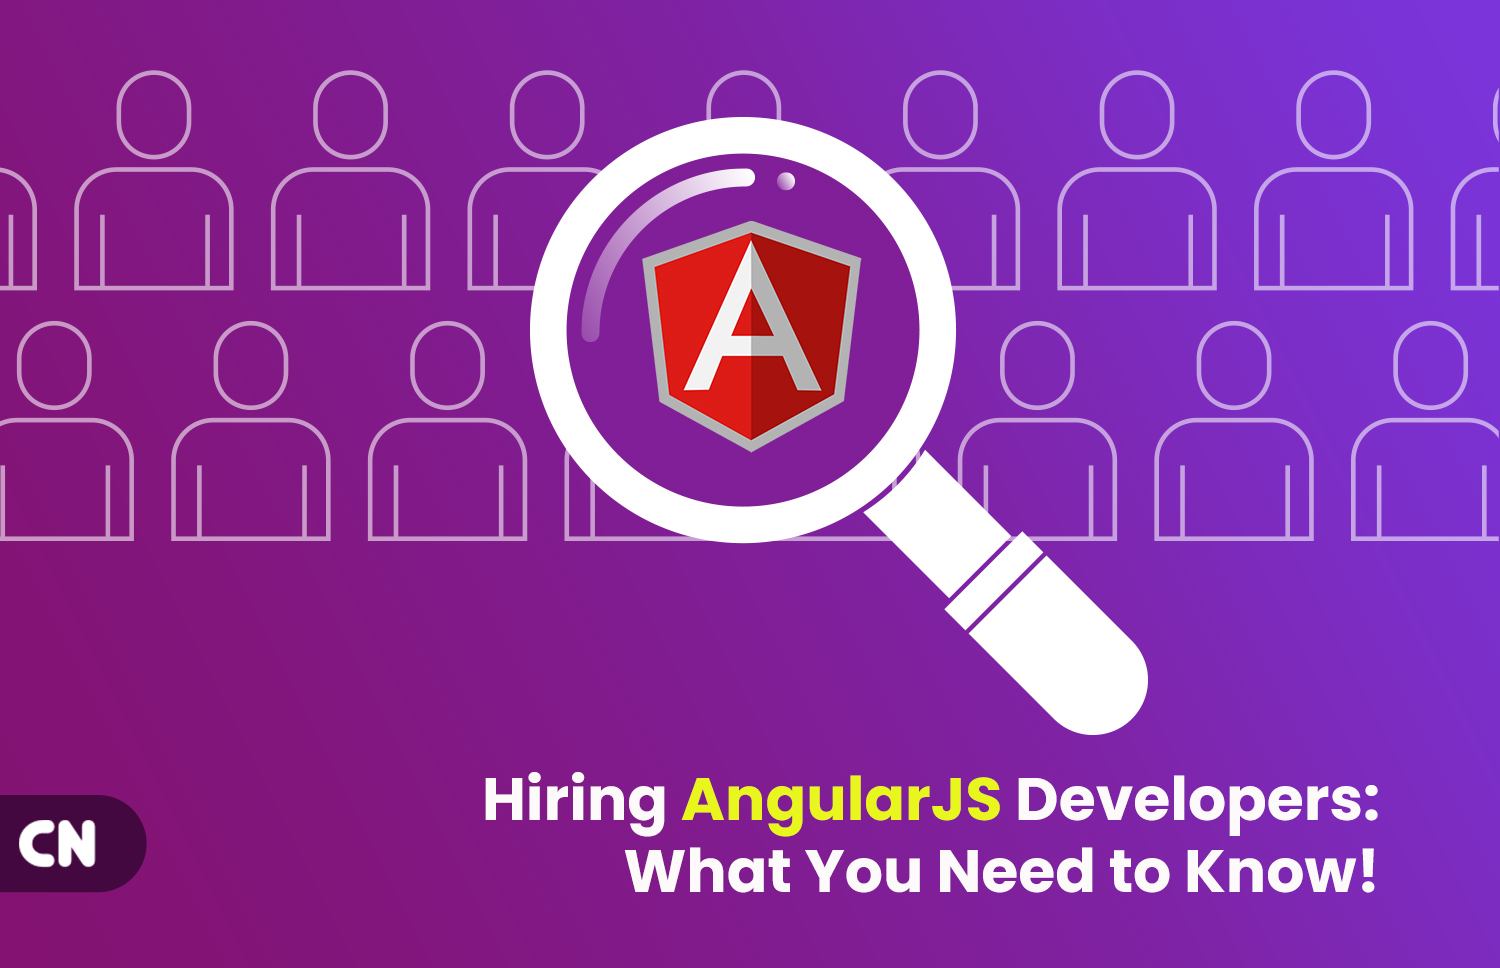 Hiring Angular JS Developers